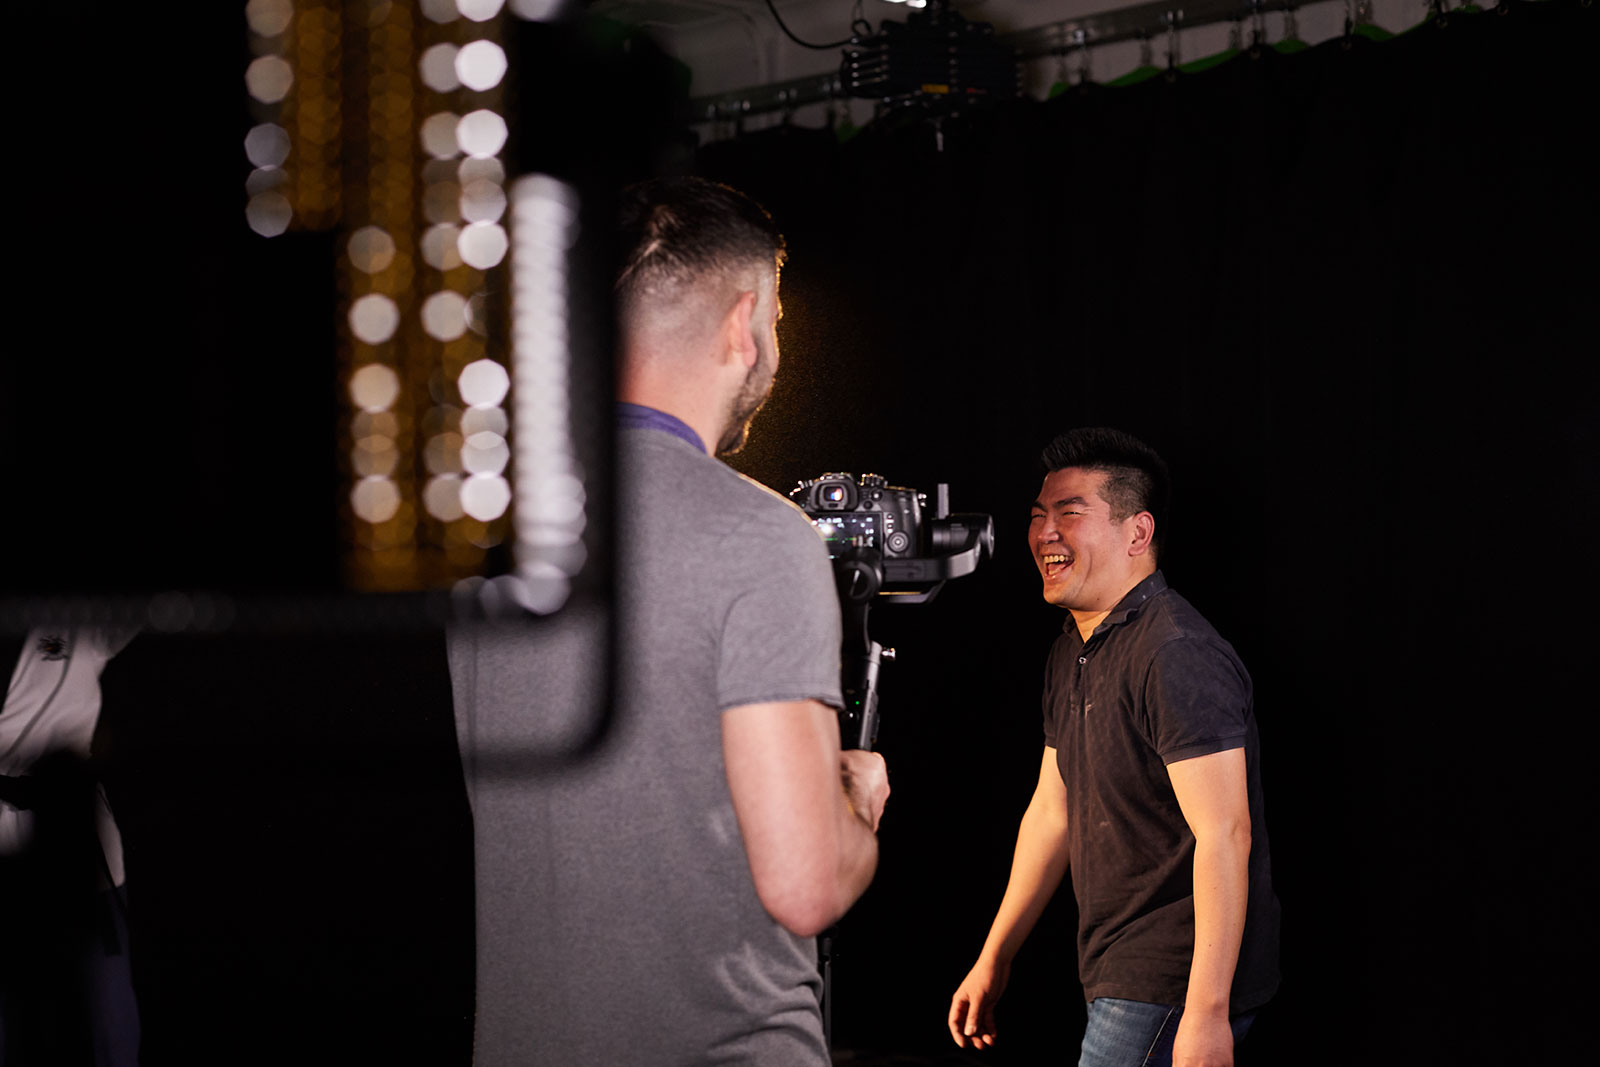 Roter Su, Lecturer in Film at Norwich University of the Arts stands by a light on a film set laughing whilst talking to camera operator